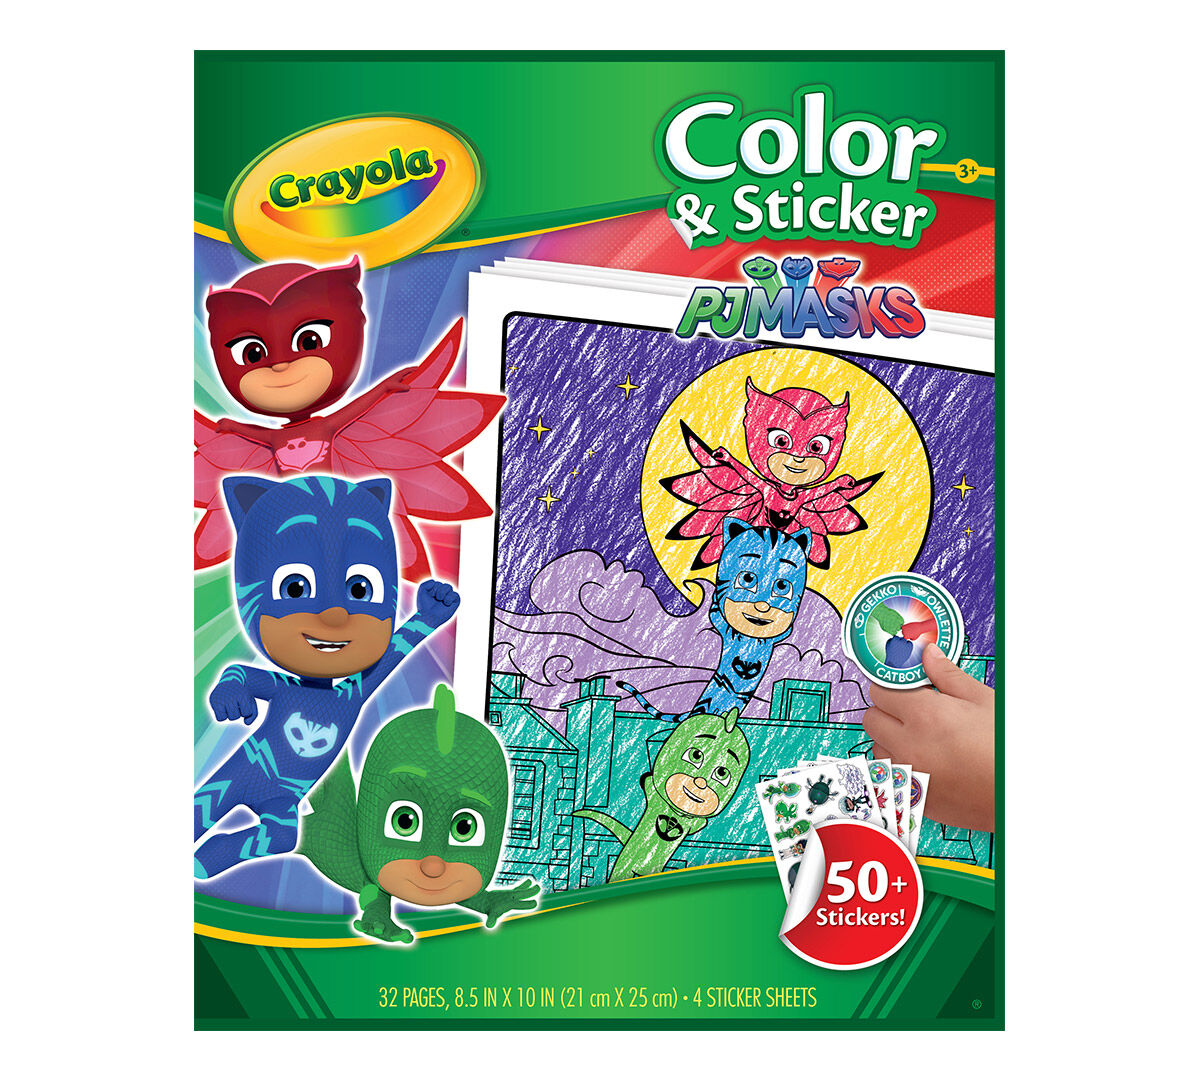 - PJ Masks Color & Sticker Gift Set Crayola.com Crayola